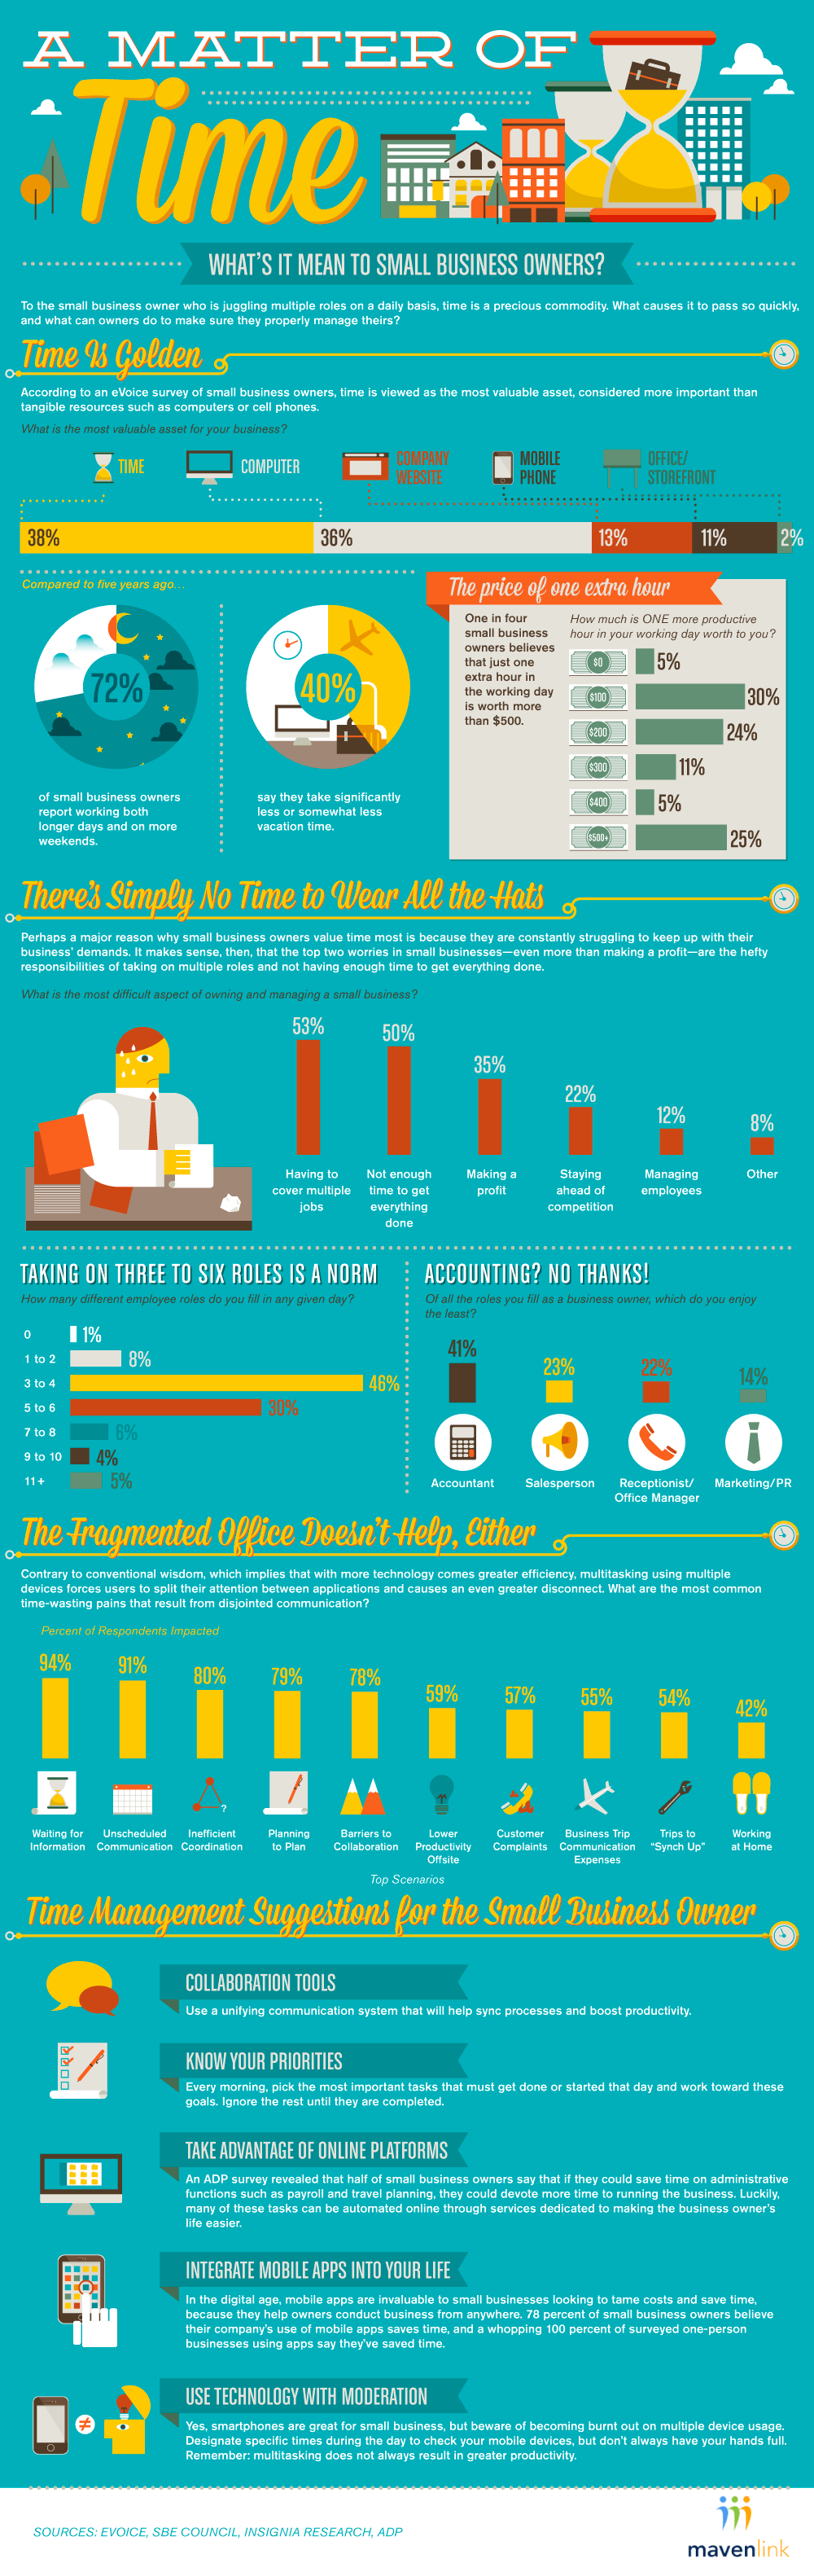 Infographic: Matter of Time